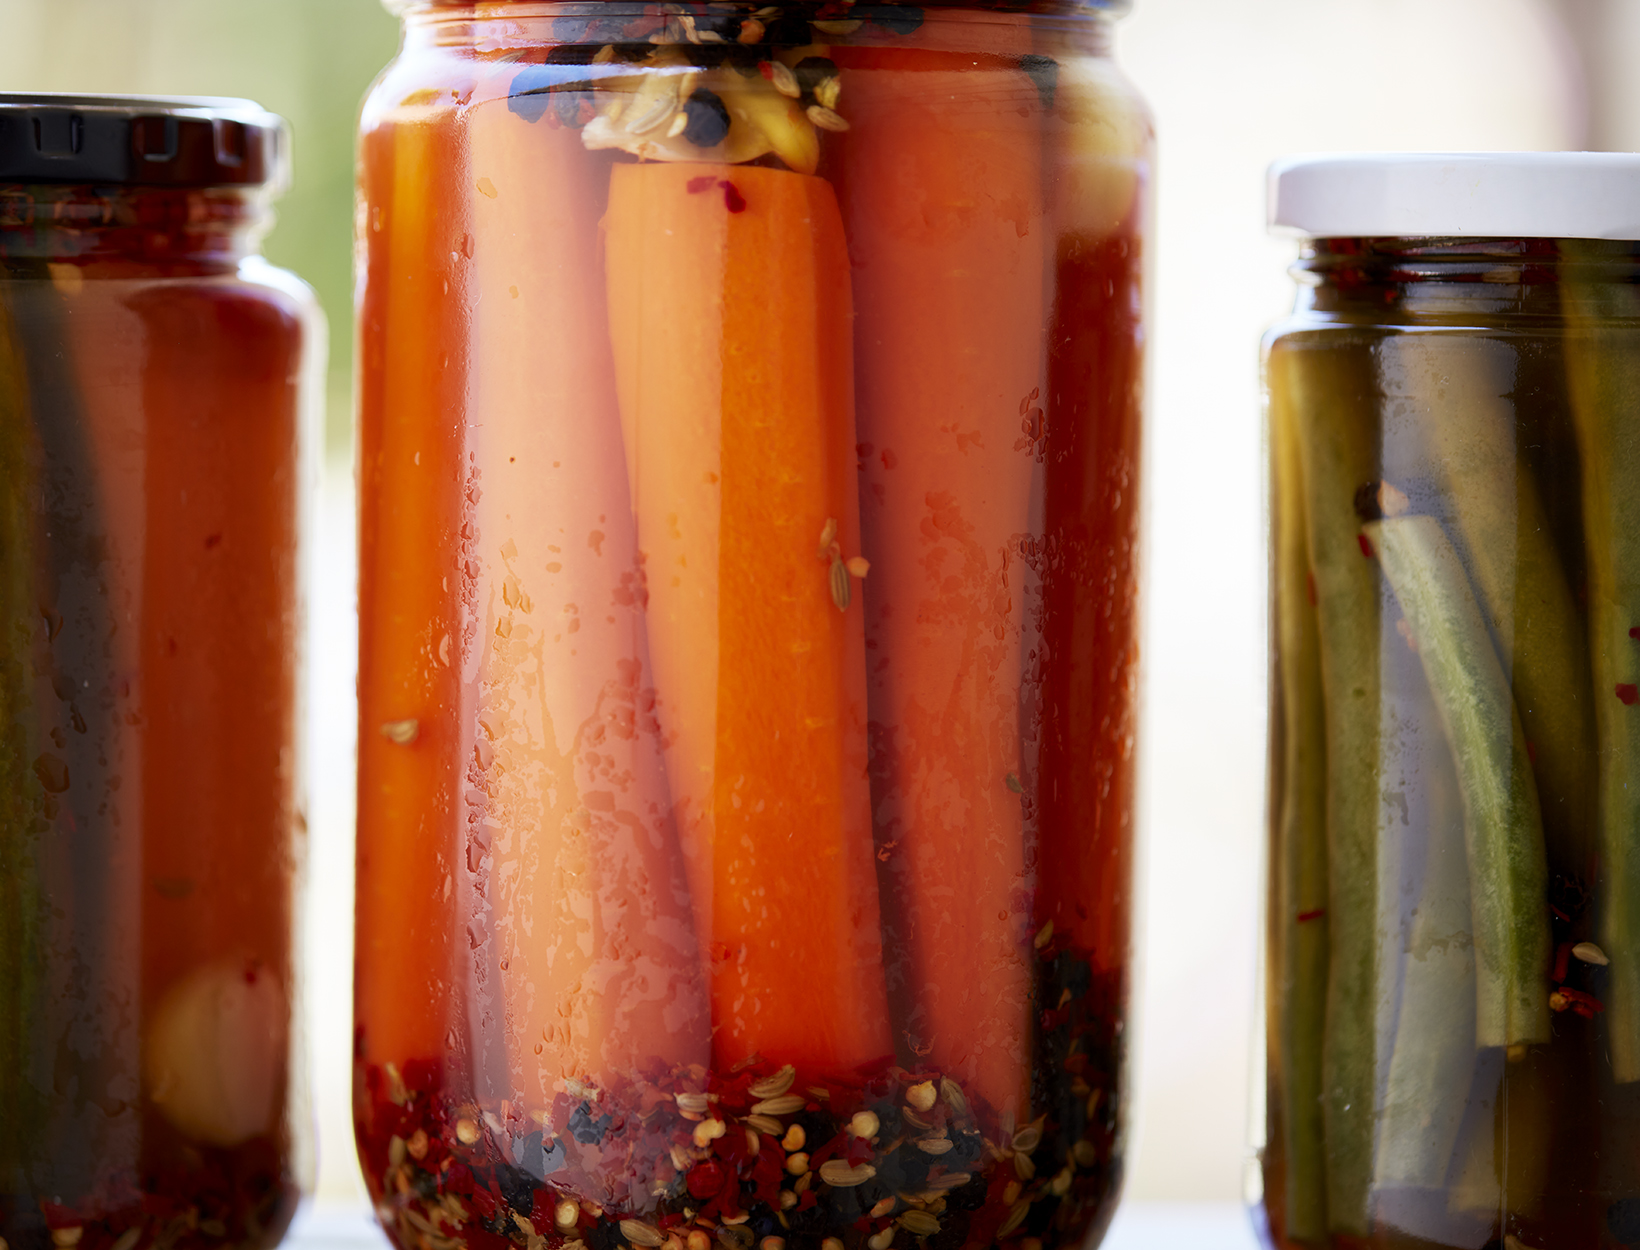 Spicy Pickles with Chili and Fennel